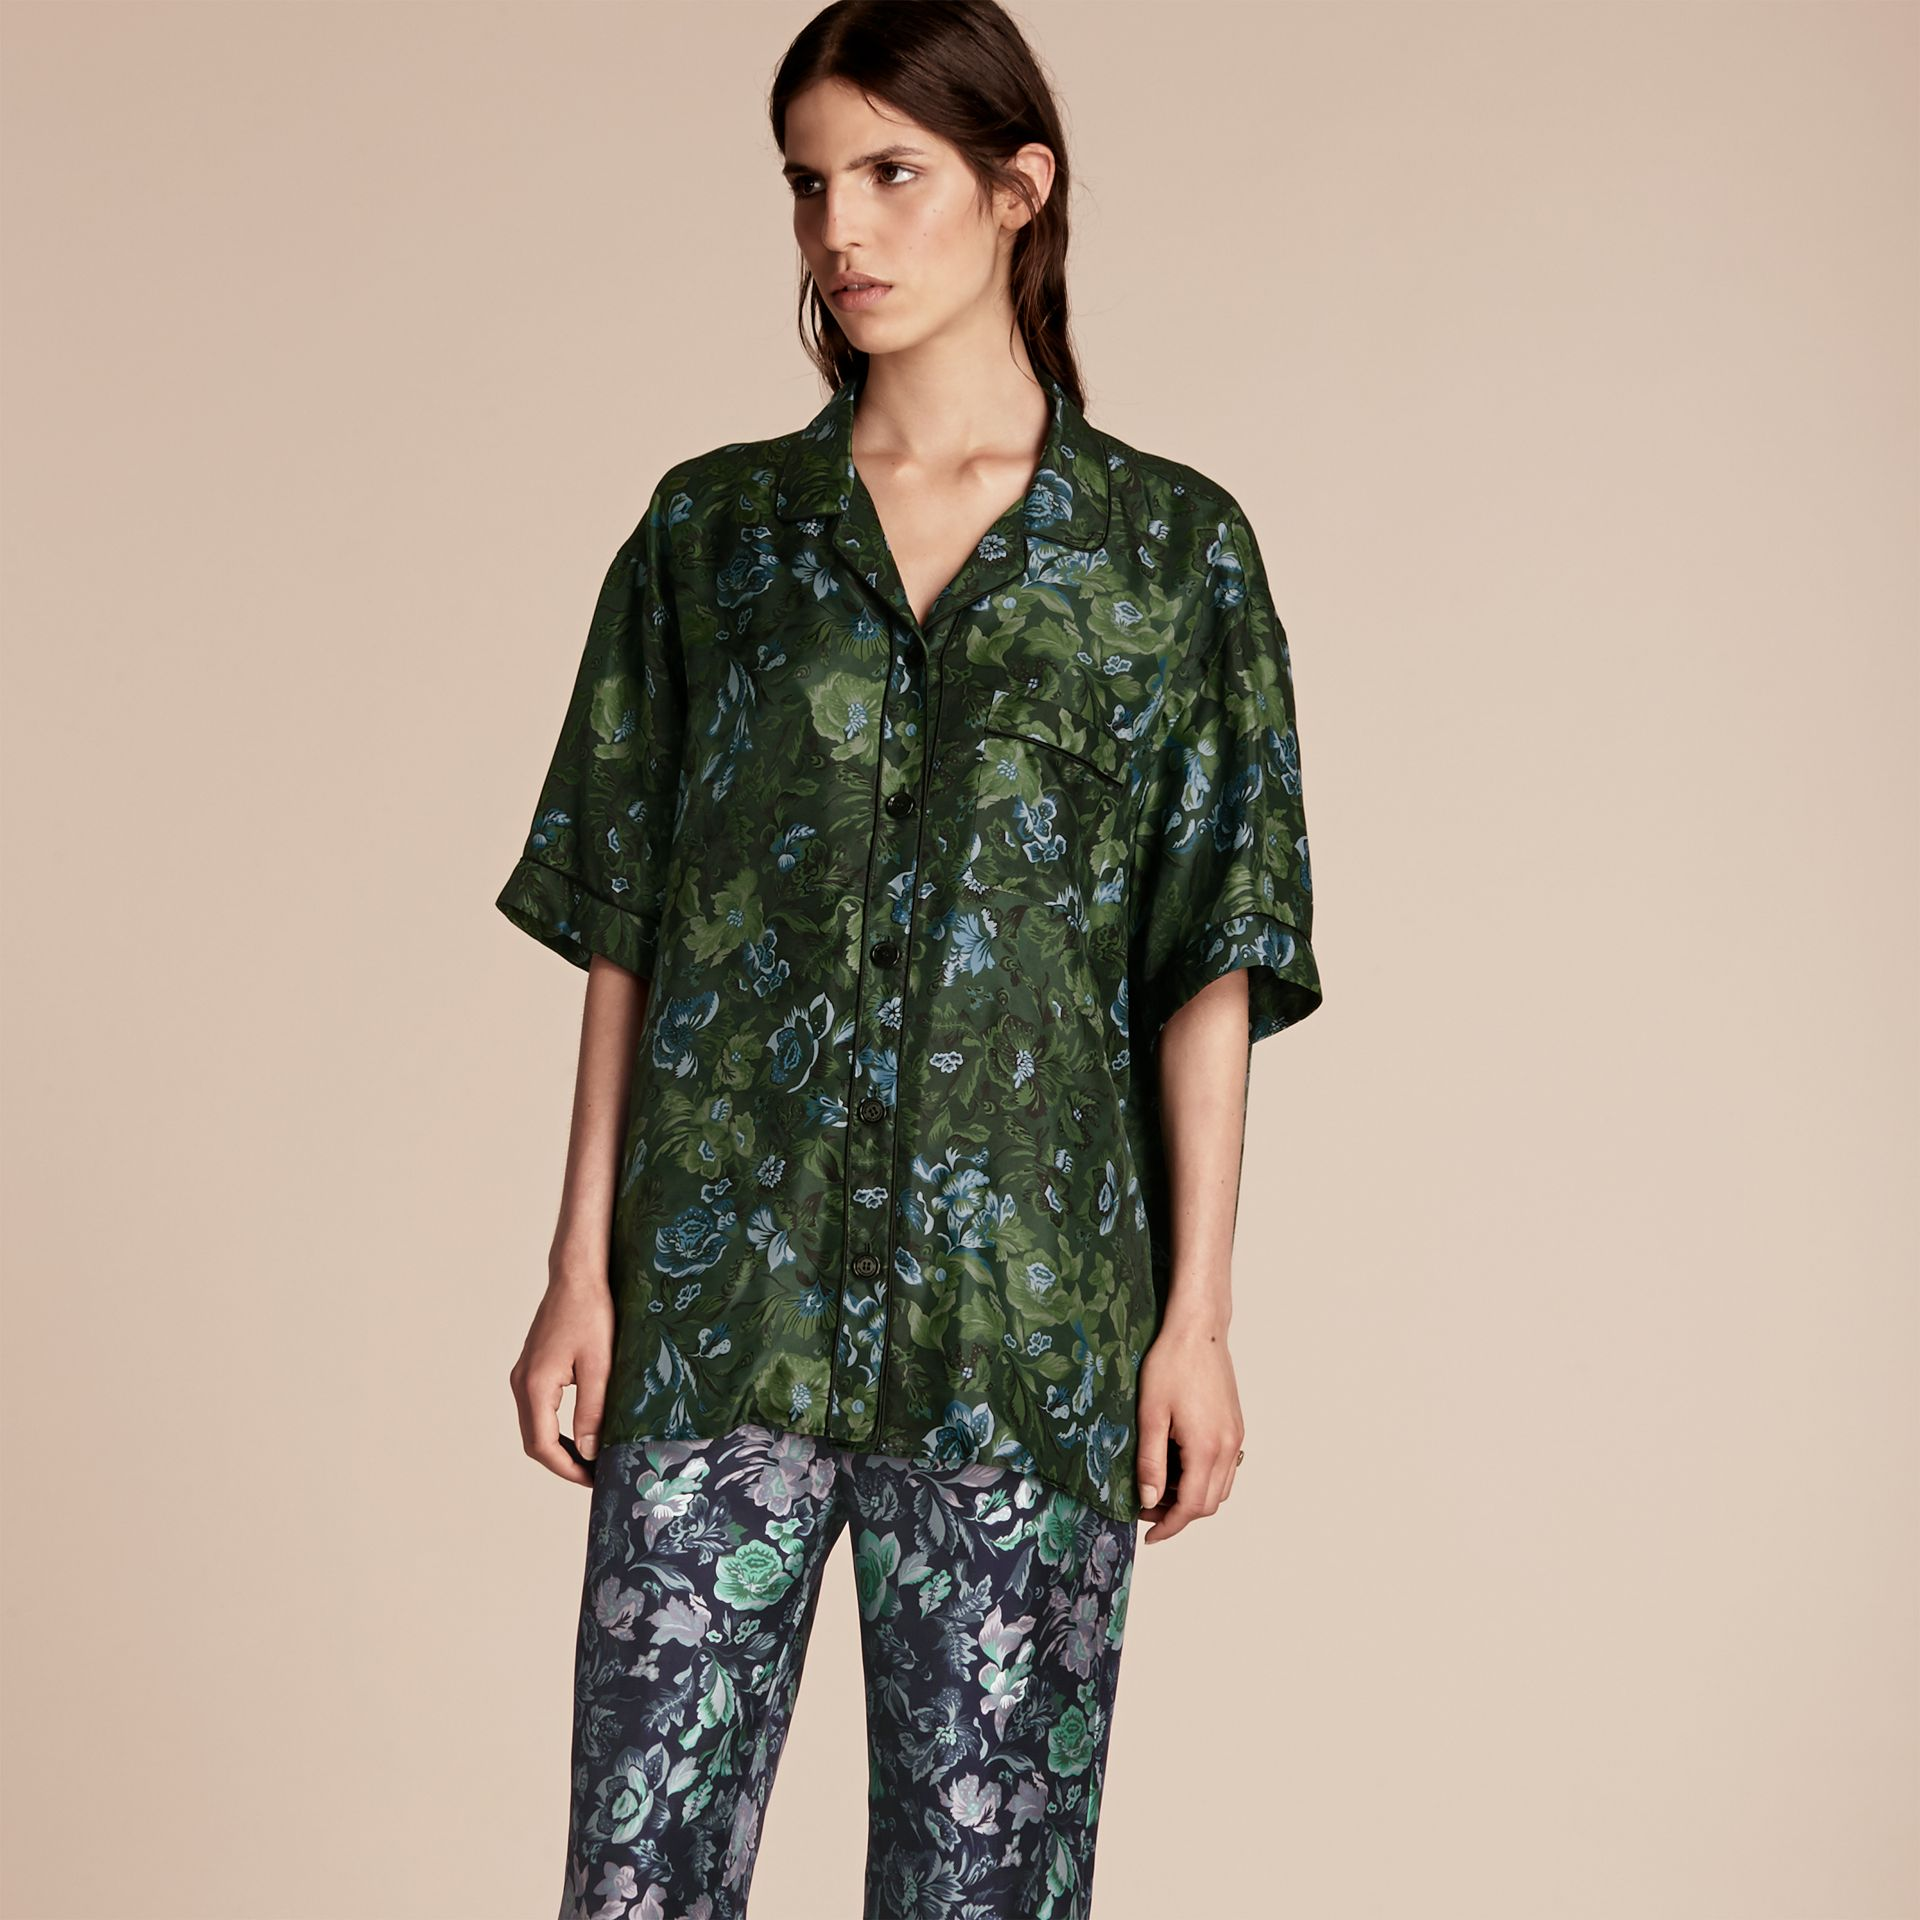 Forest green Short-sleeved Floral Print Silk Pyjama-style Shirt Forest Green - gallery image 1